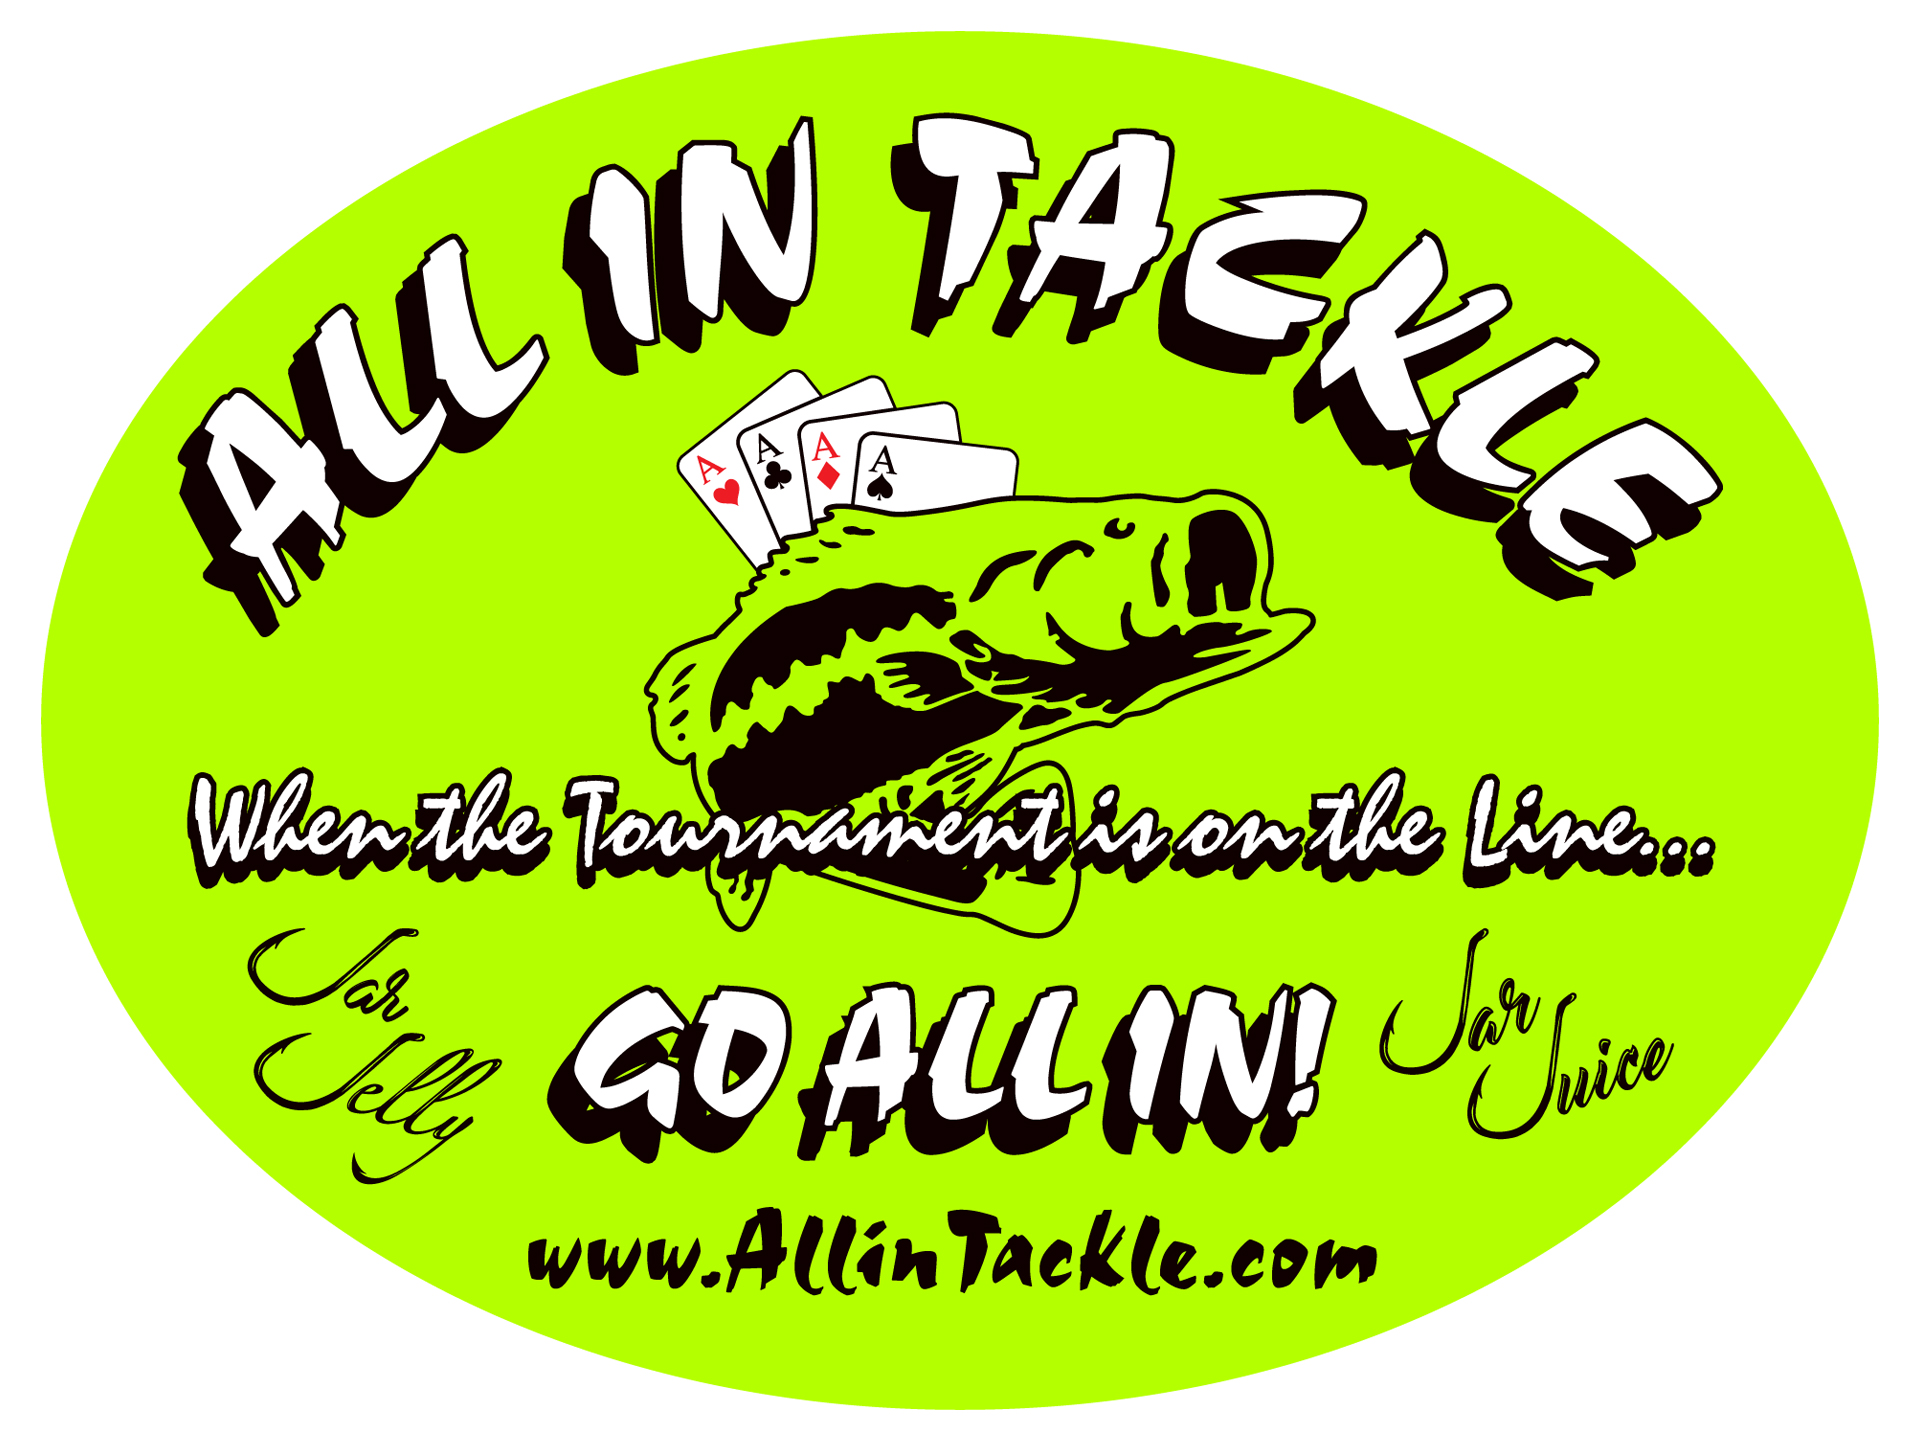 All In Tackle